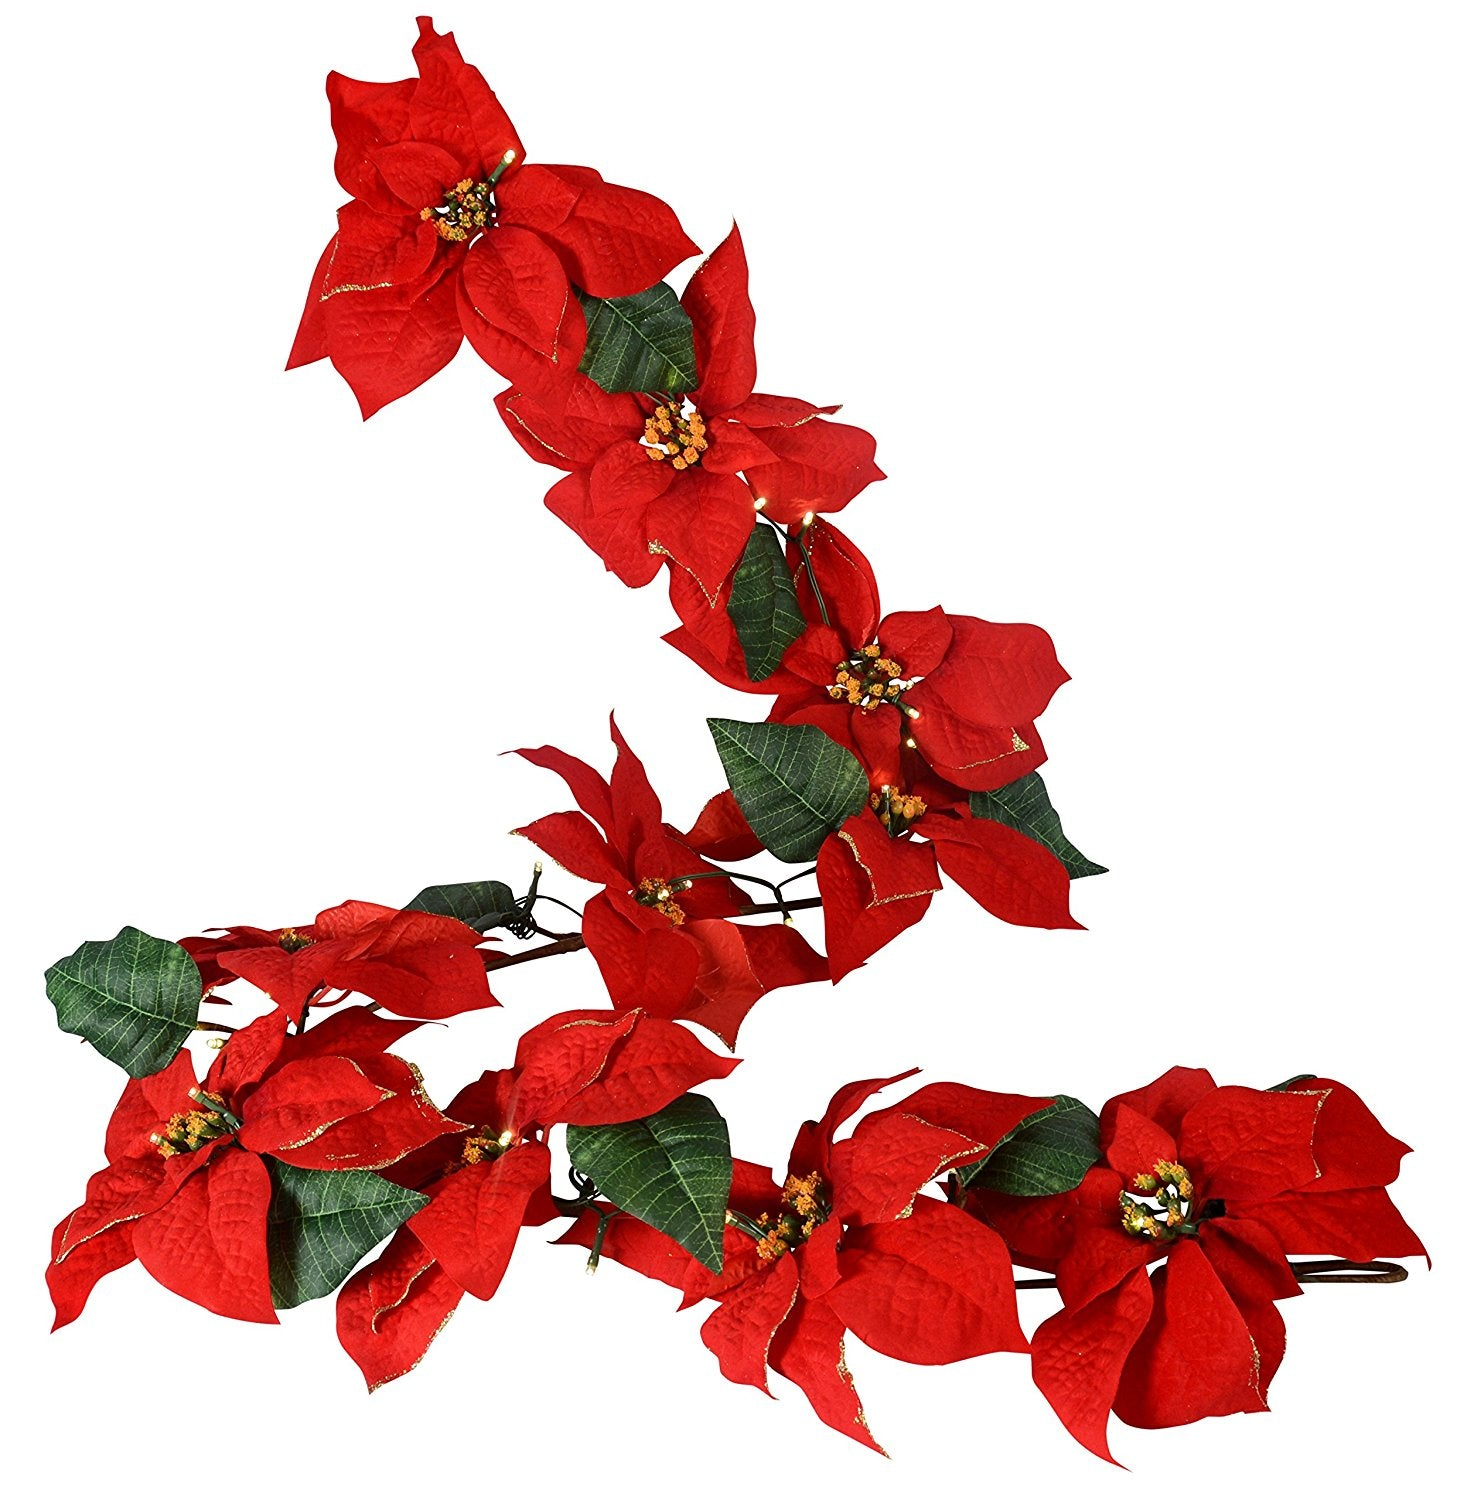 6 Foot Gold Tipped Poinsettia Christmas Garland With 36 Led Lights Battery Operated With Timer Artificial Poinsettia